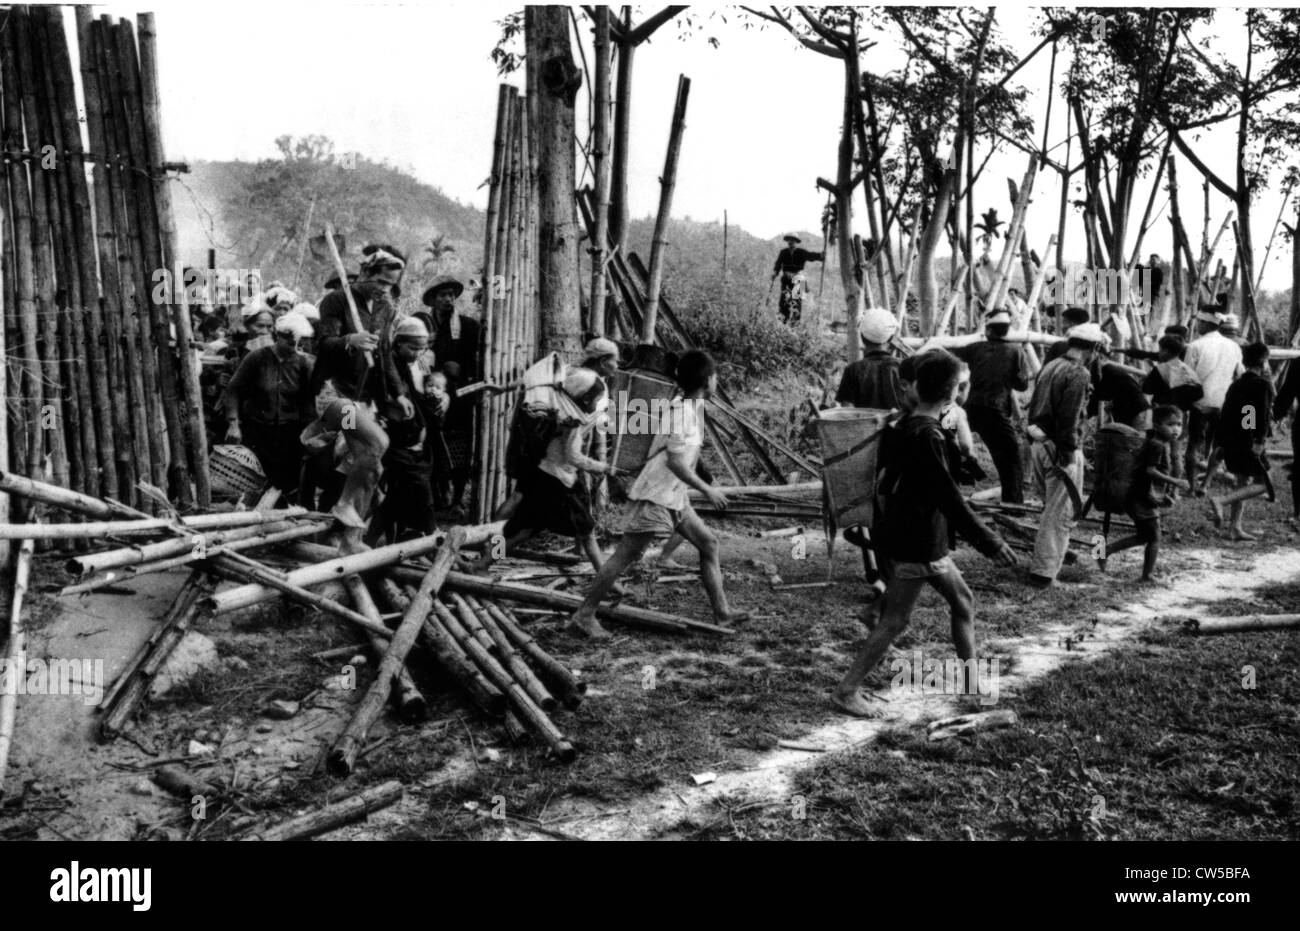 South Vietnamese civilians passing an enemy barricade to go home - Stock Image